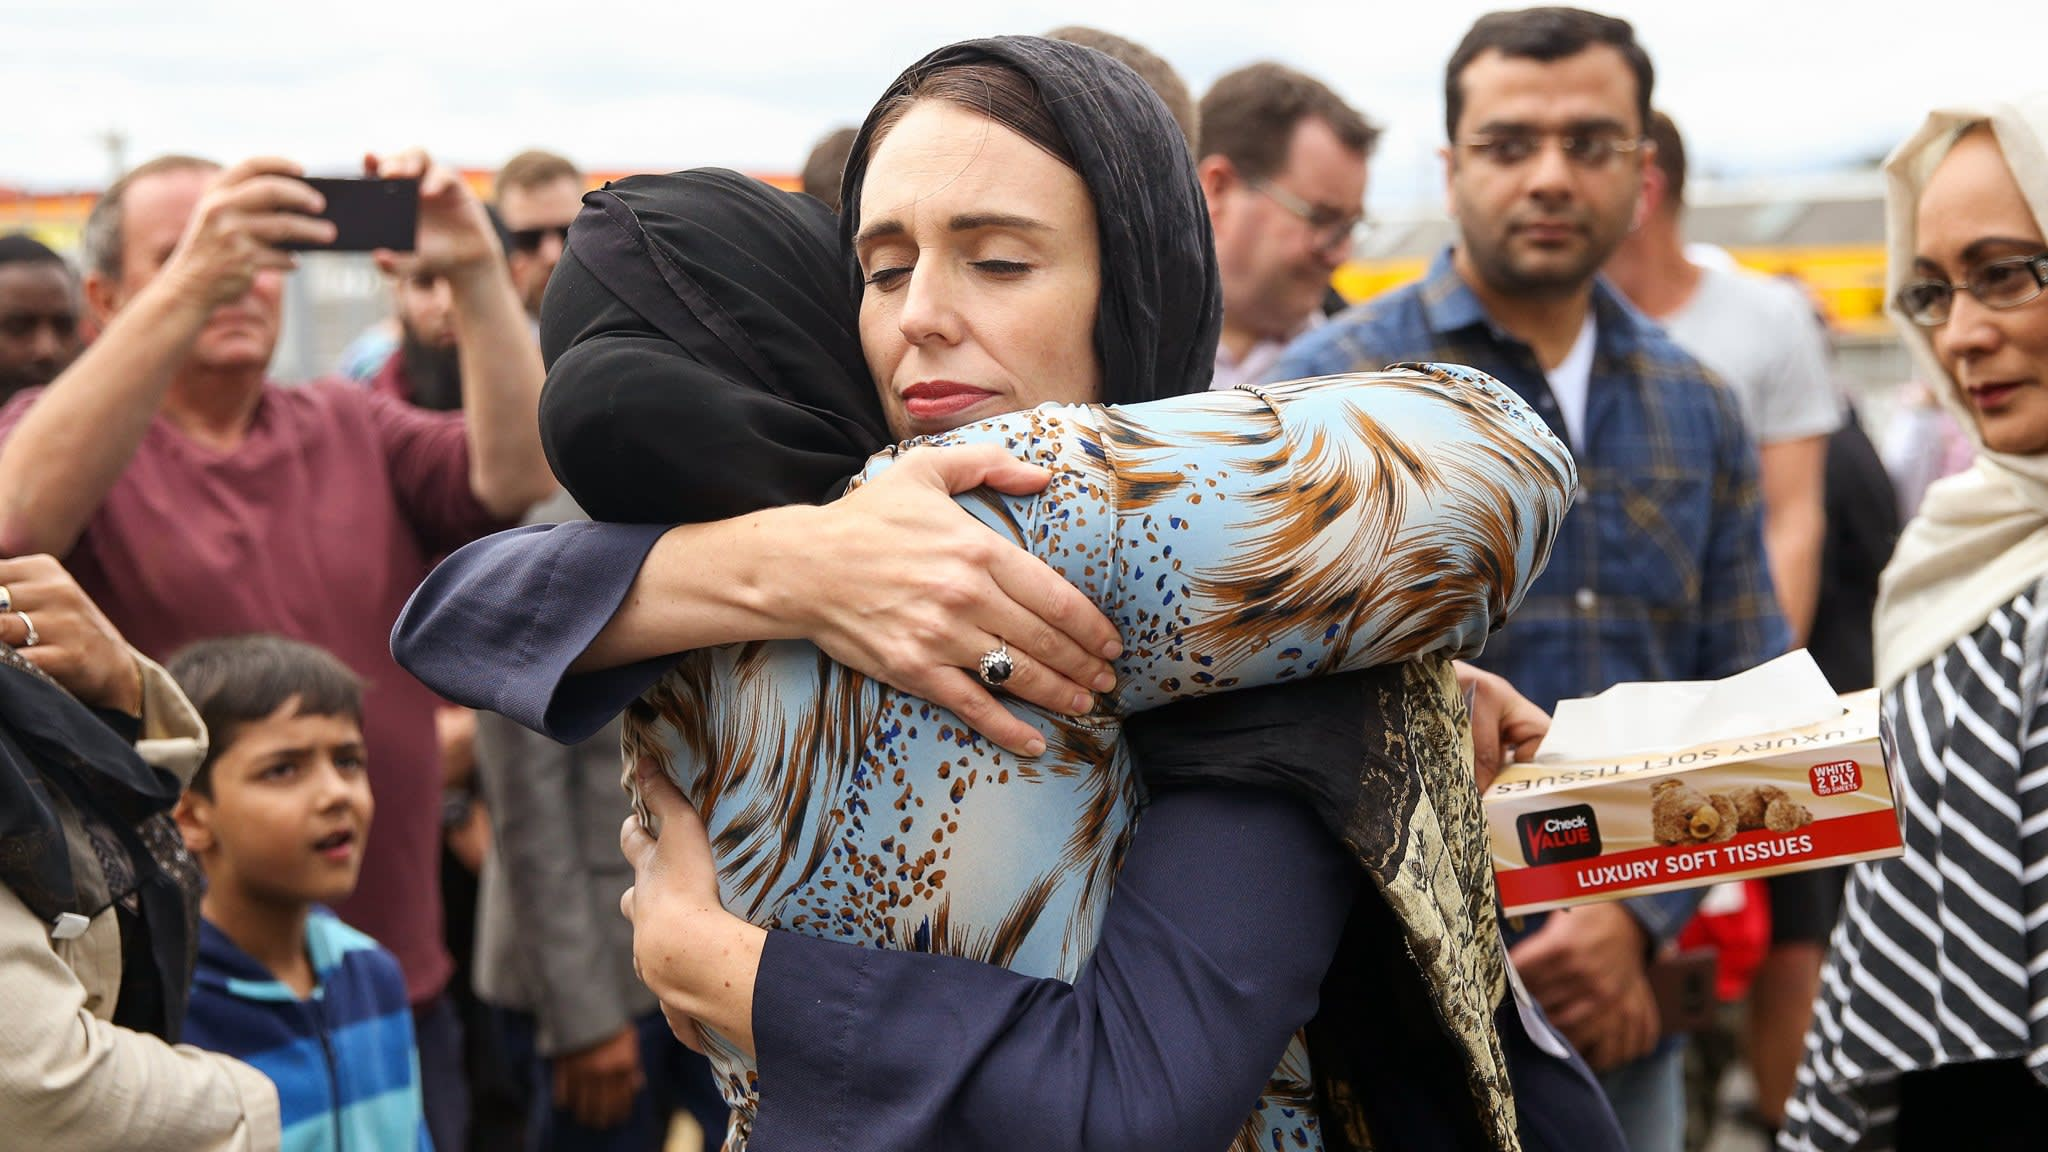 Christchurch Shooter Manifesto Picture: Police Believe New Zealand Shooter May Have Acted Alone